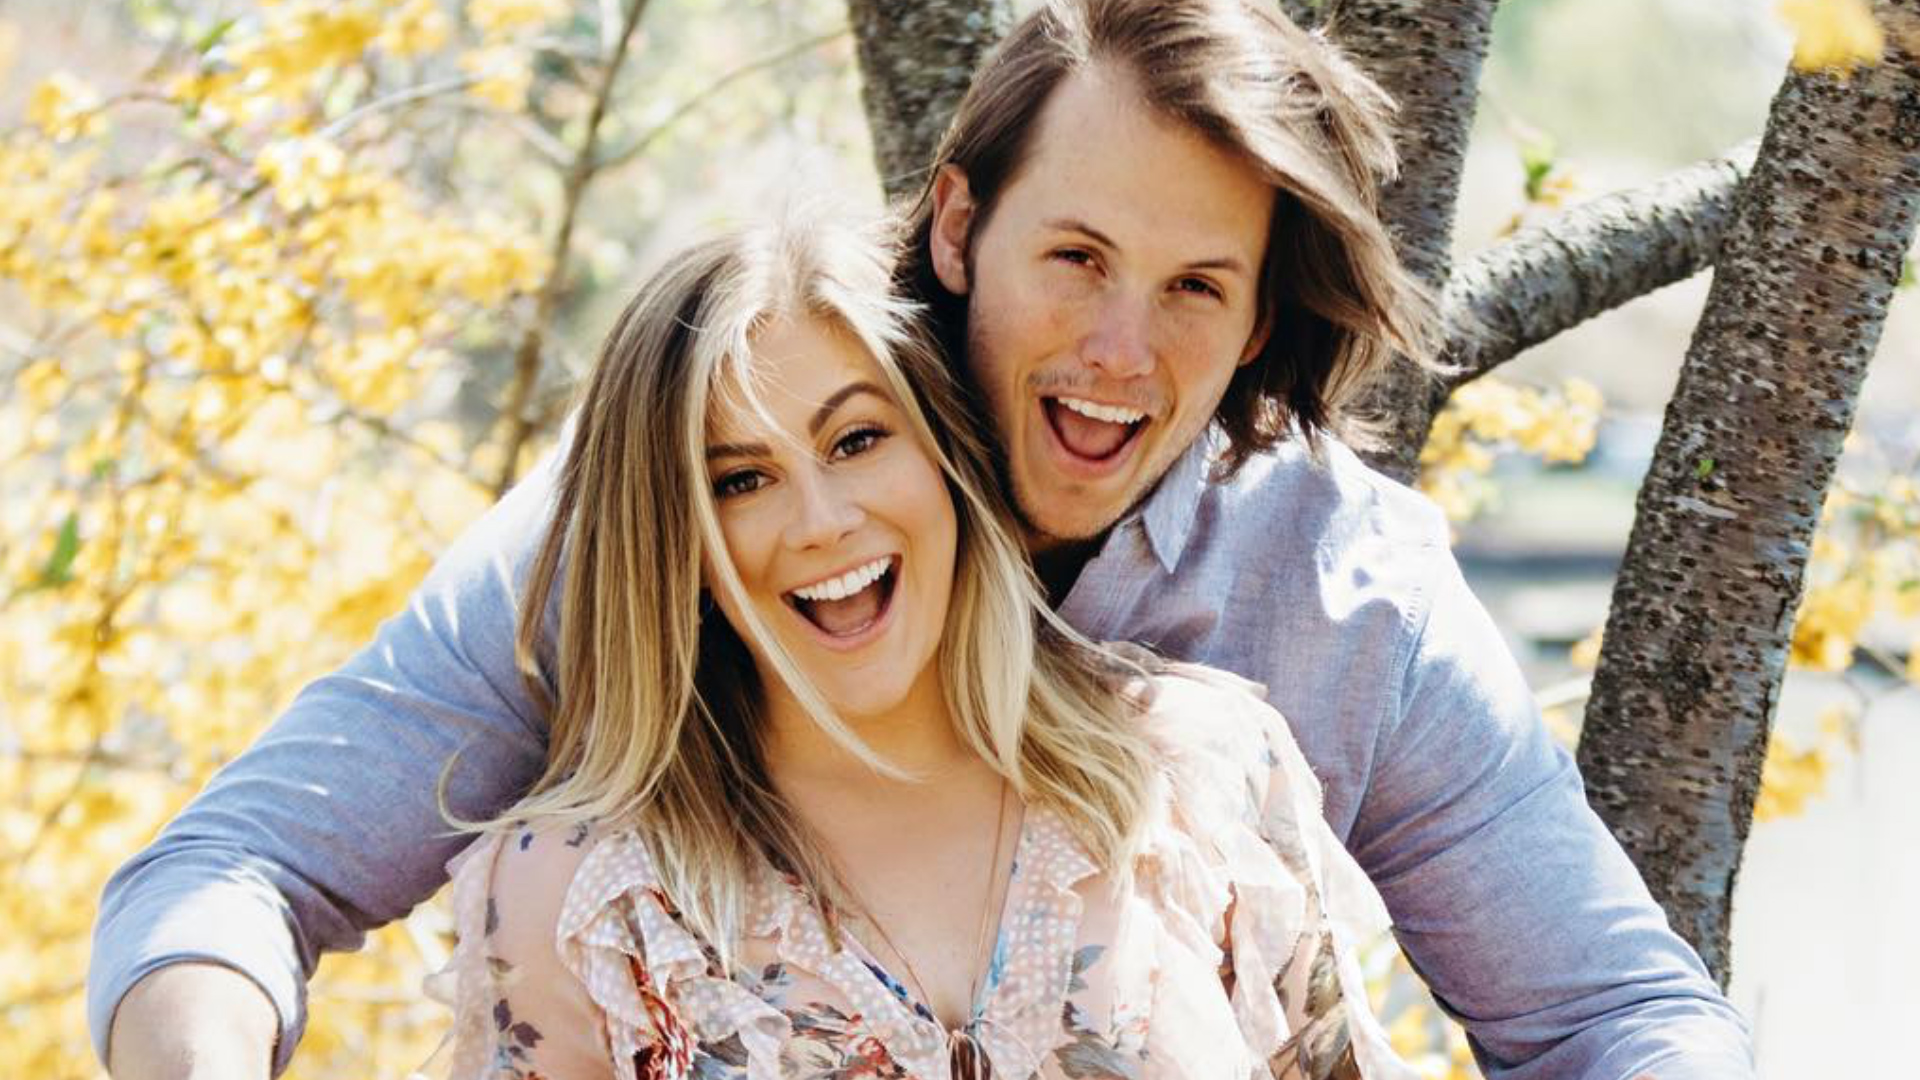 Shawn Johnson Wedding.Shawn Johnson Is Pregnant With Her First Child After Suffering Miscarriage Access